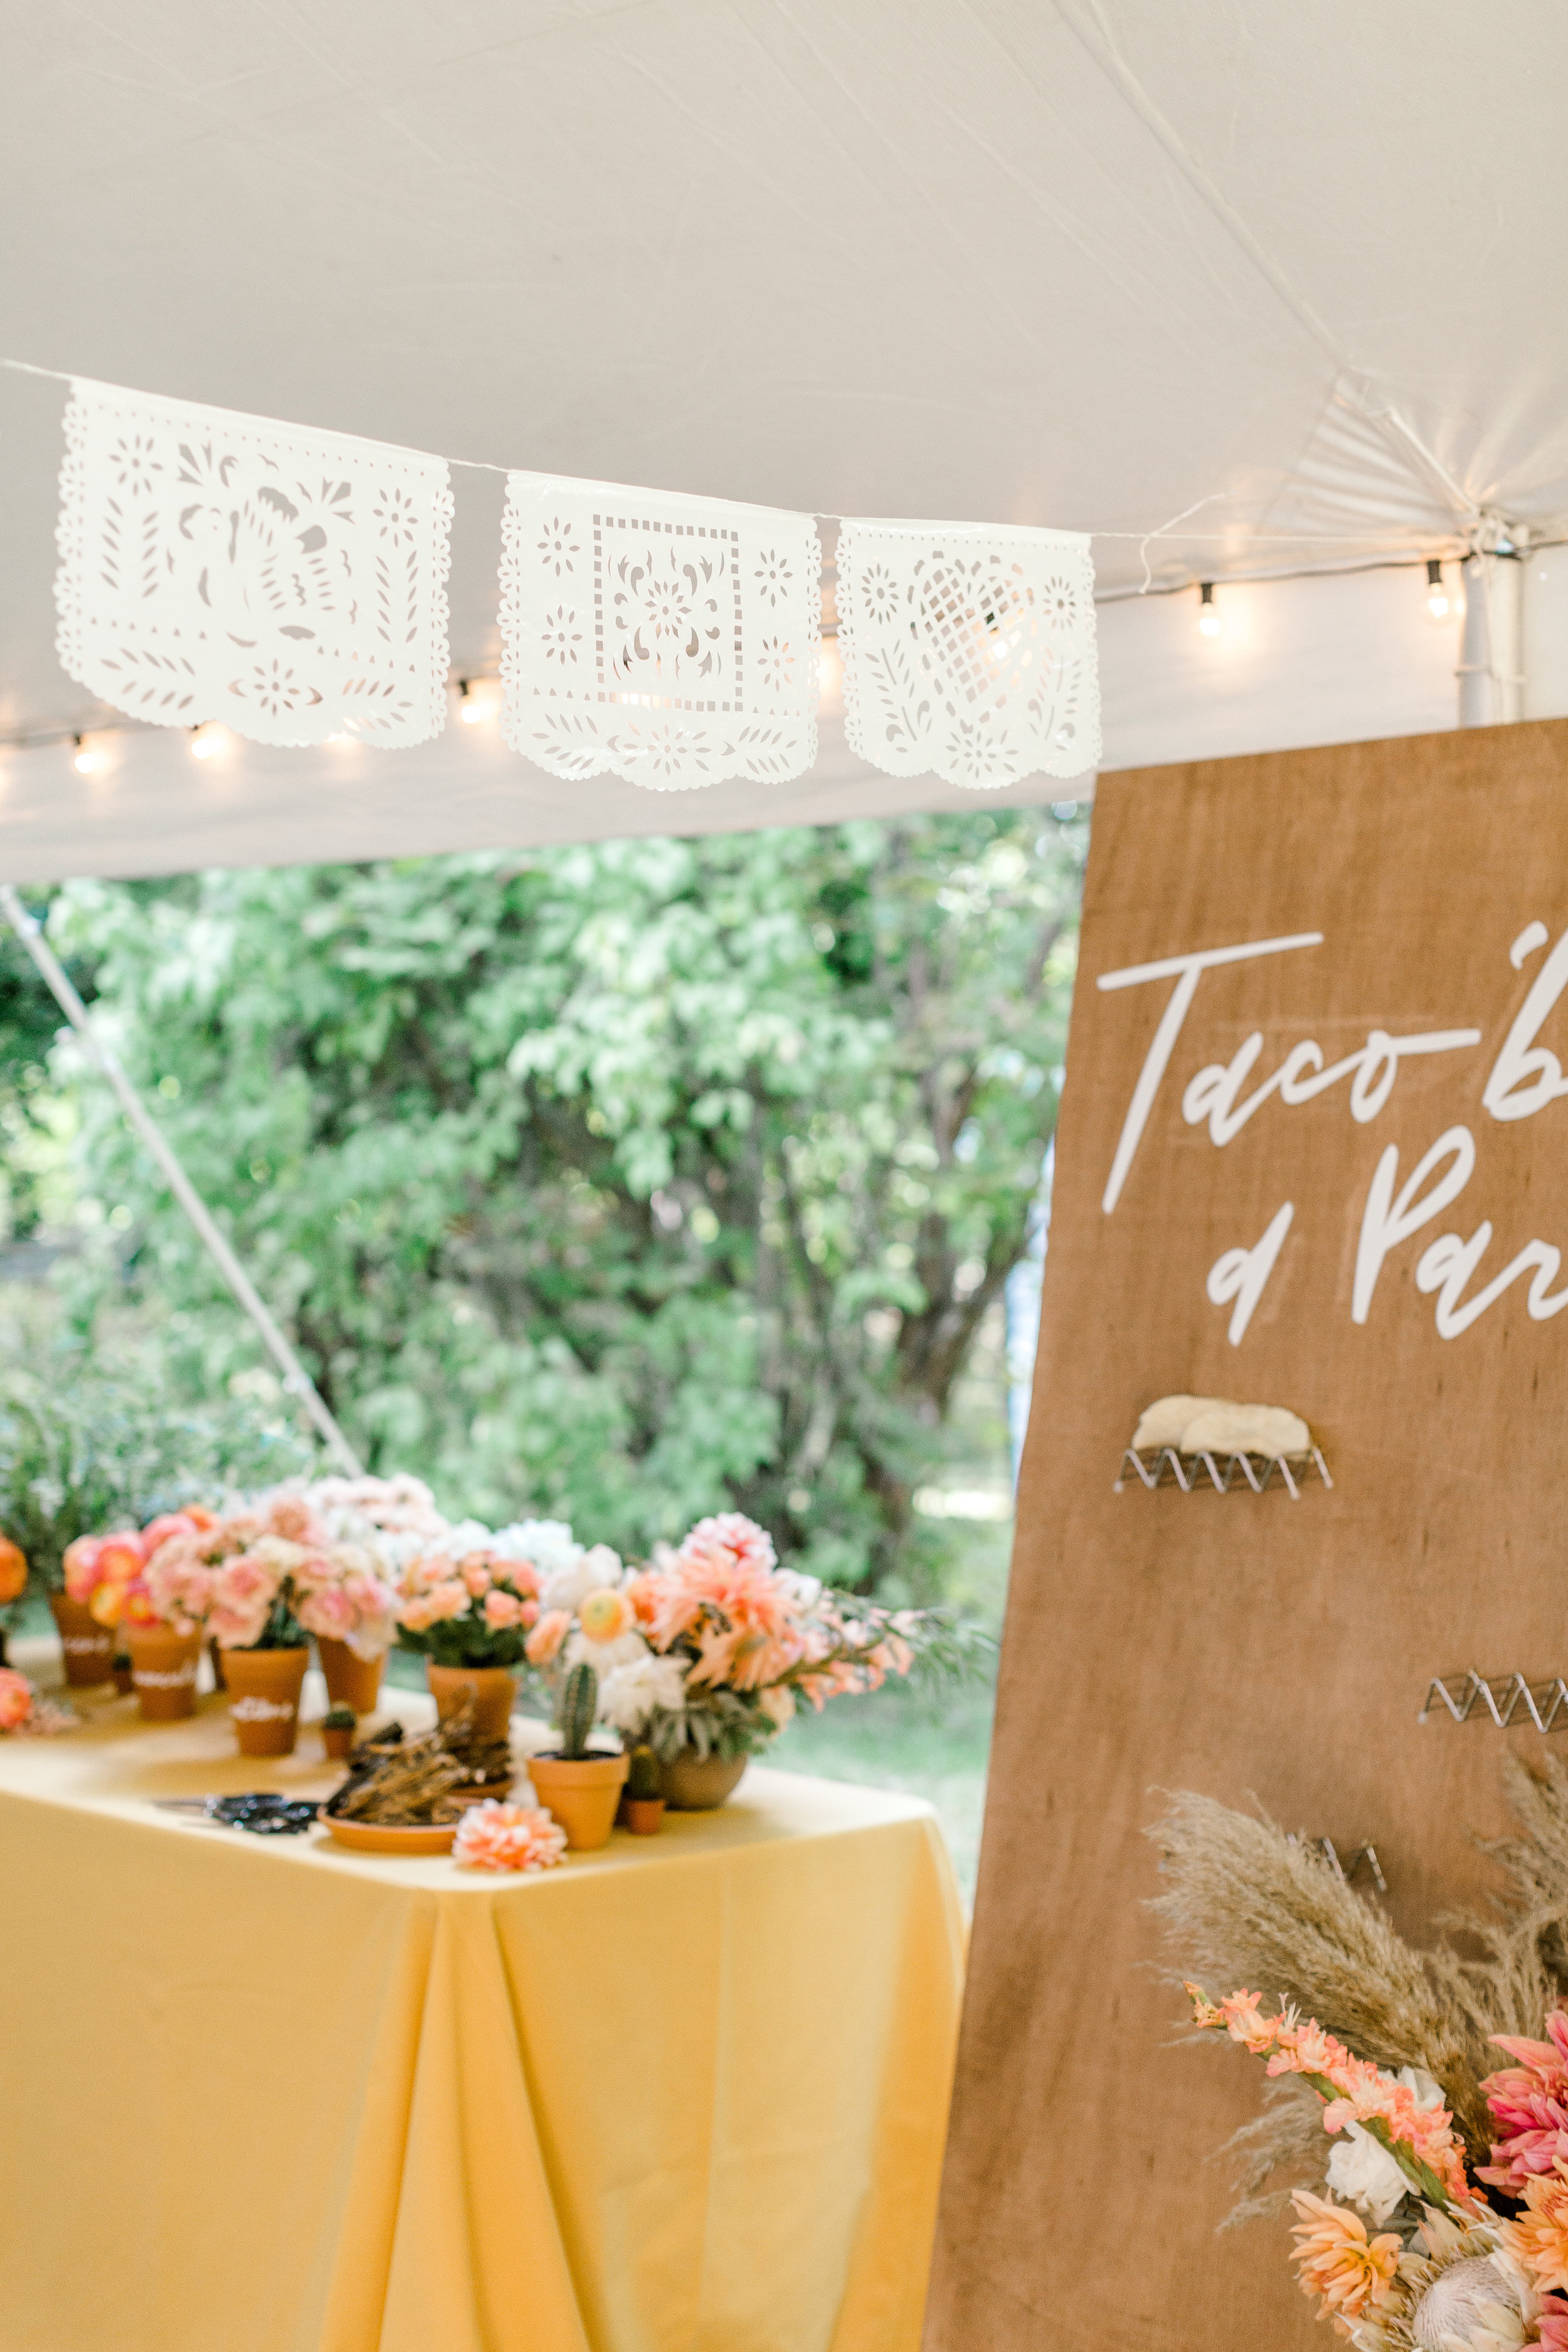 Gabi_s+Bridal+Shower-9.jpg